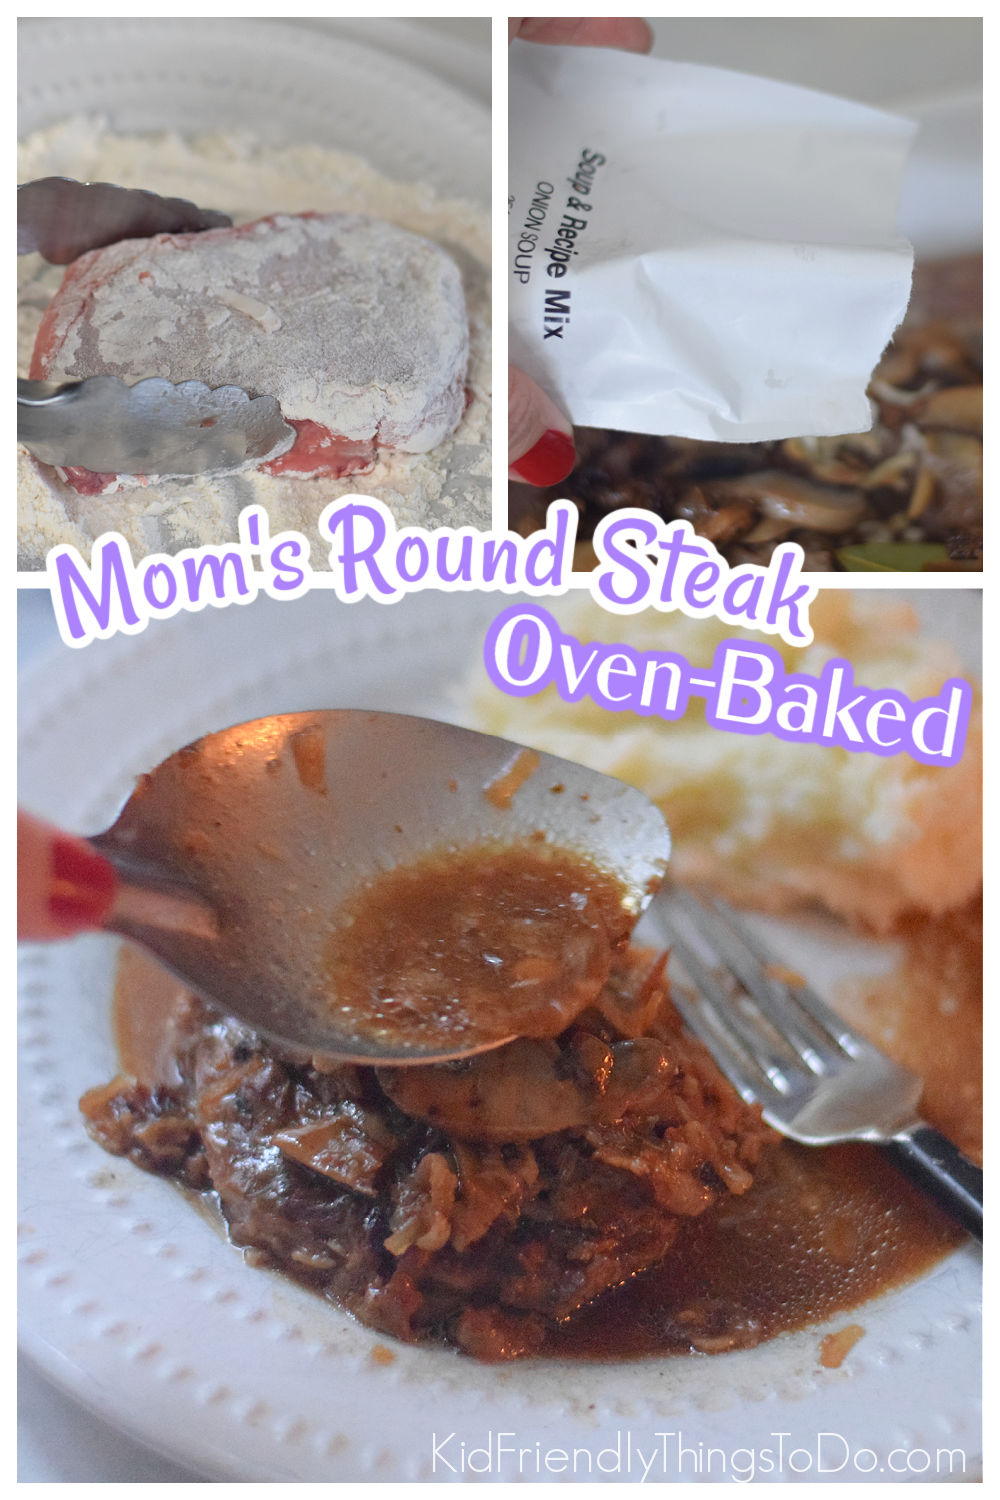 oven baked round steak recipe